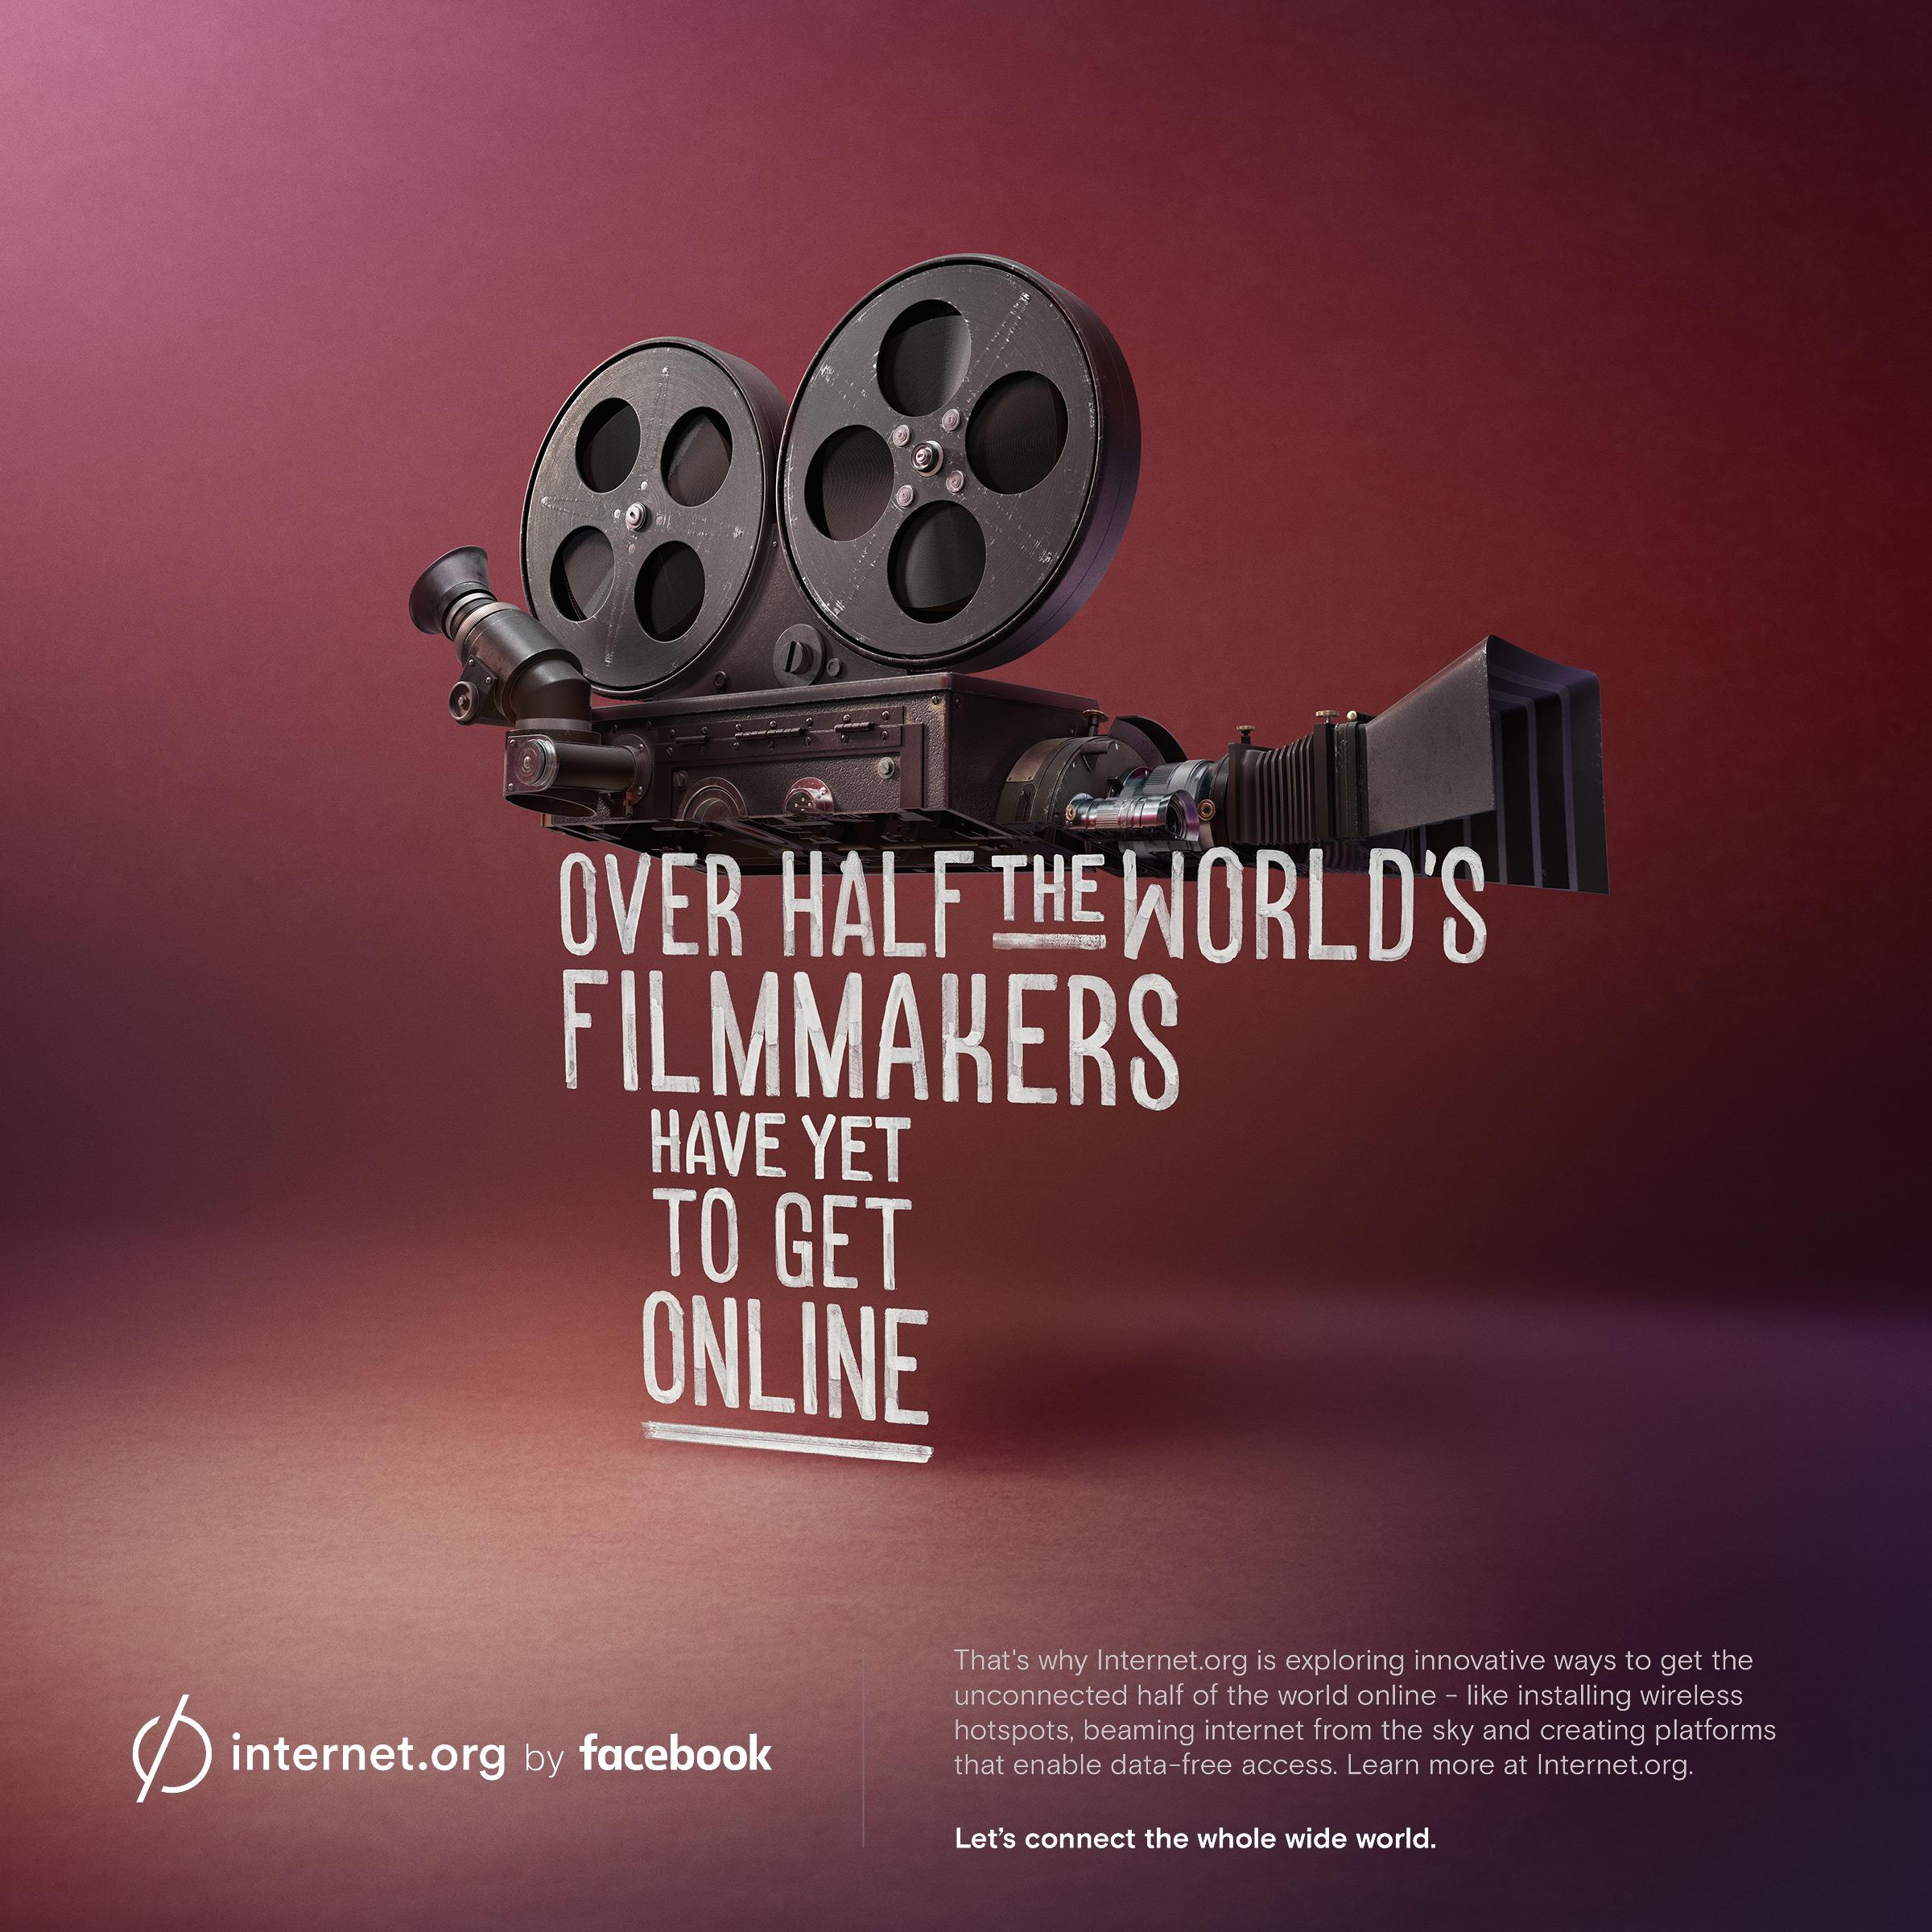 Facebook Print Ad - internet.org - Filmmakers